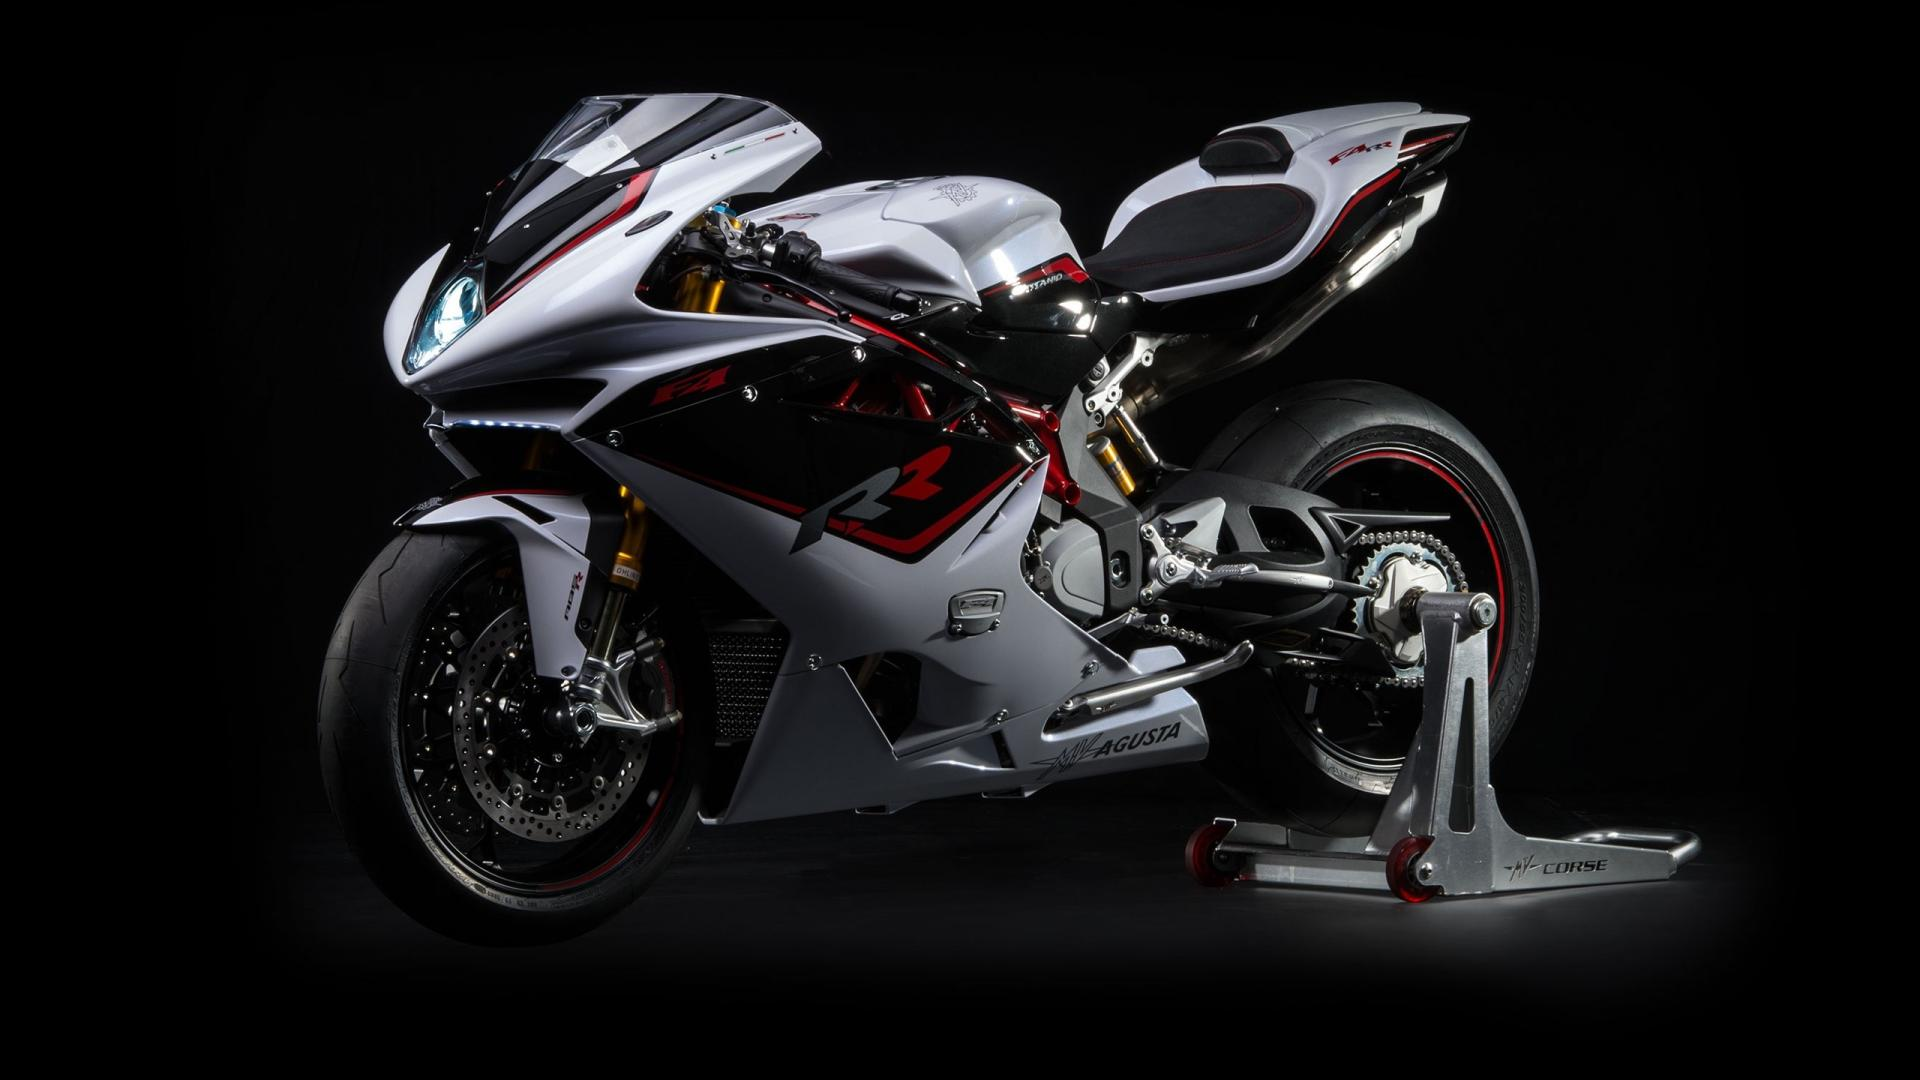 mv-agusta-wallpapers-65491-5876726.jpg